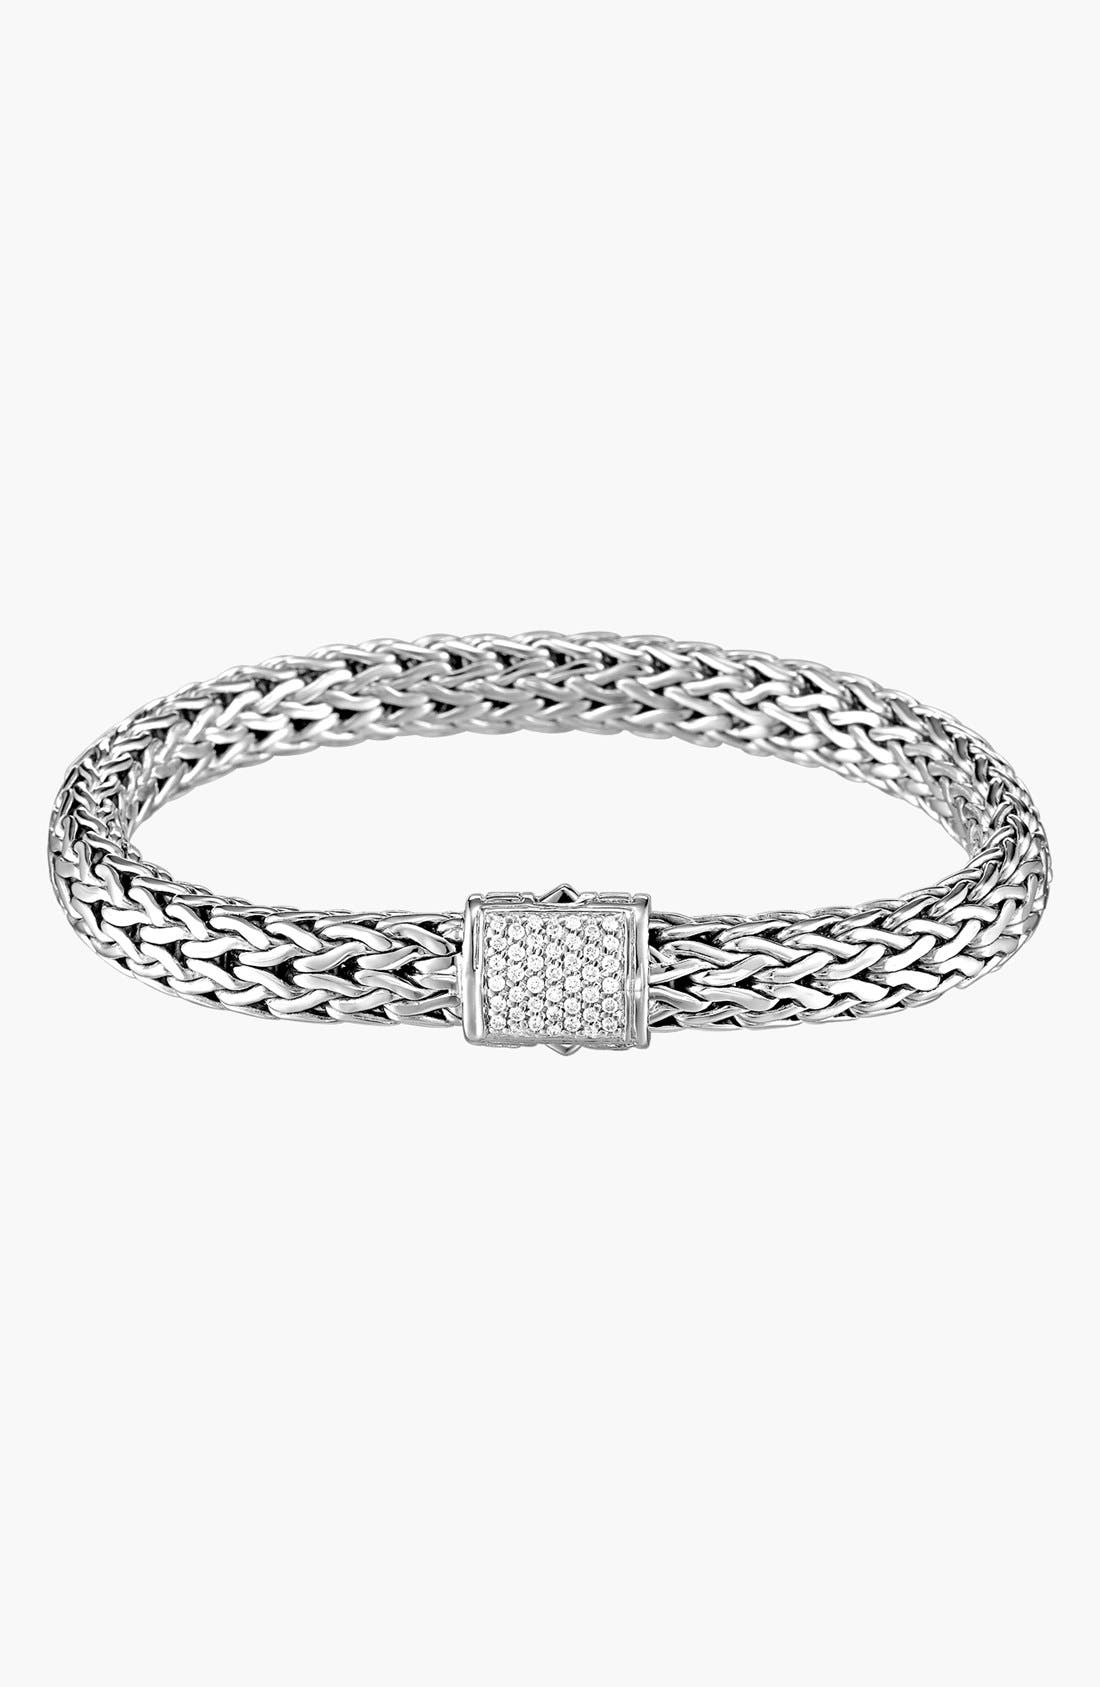 Alternate Image 1 Selected - John Hardy 'Classic Chain' Medium Pavé Diamond Bracelet